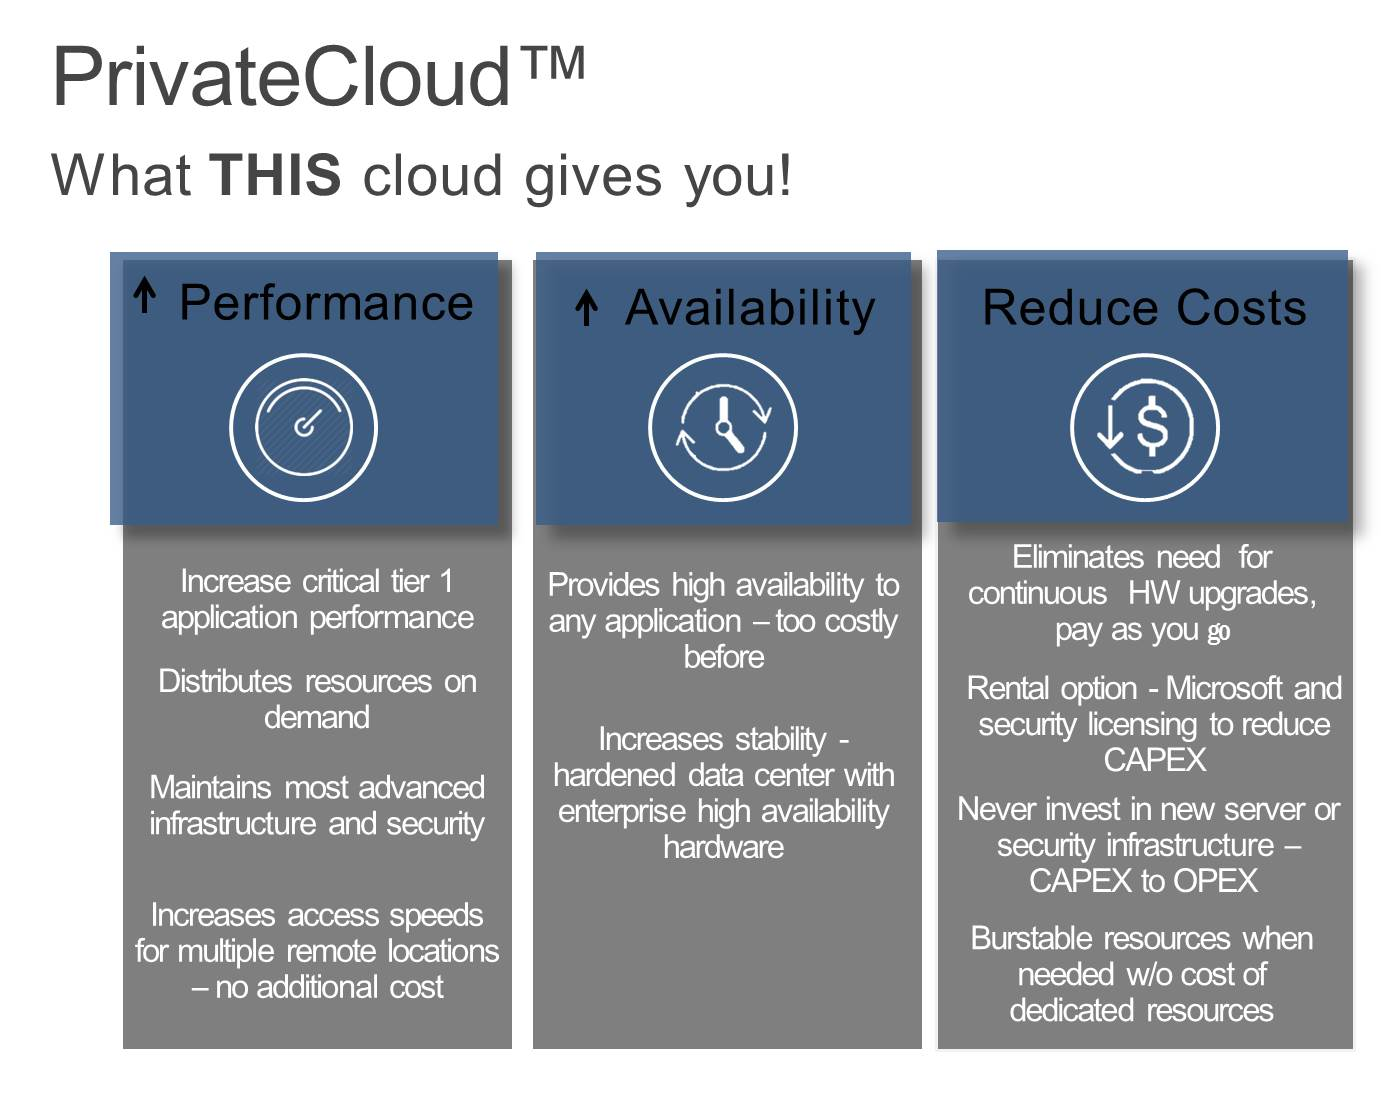 privatecloud-givesyou.jpg